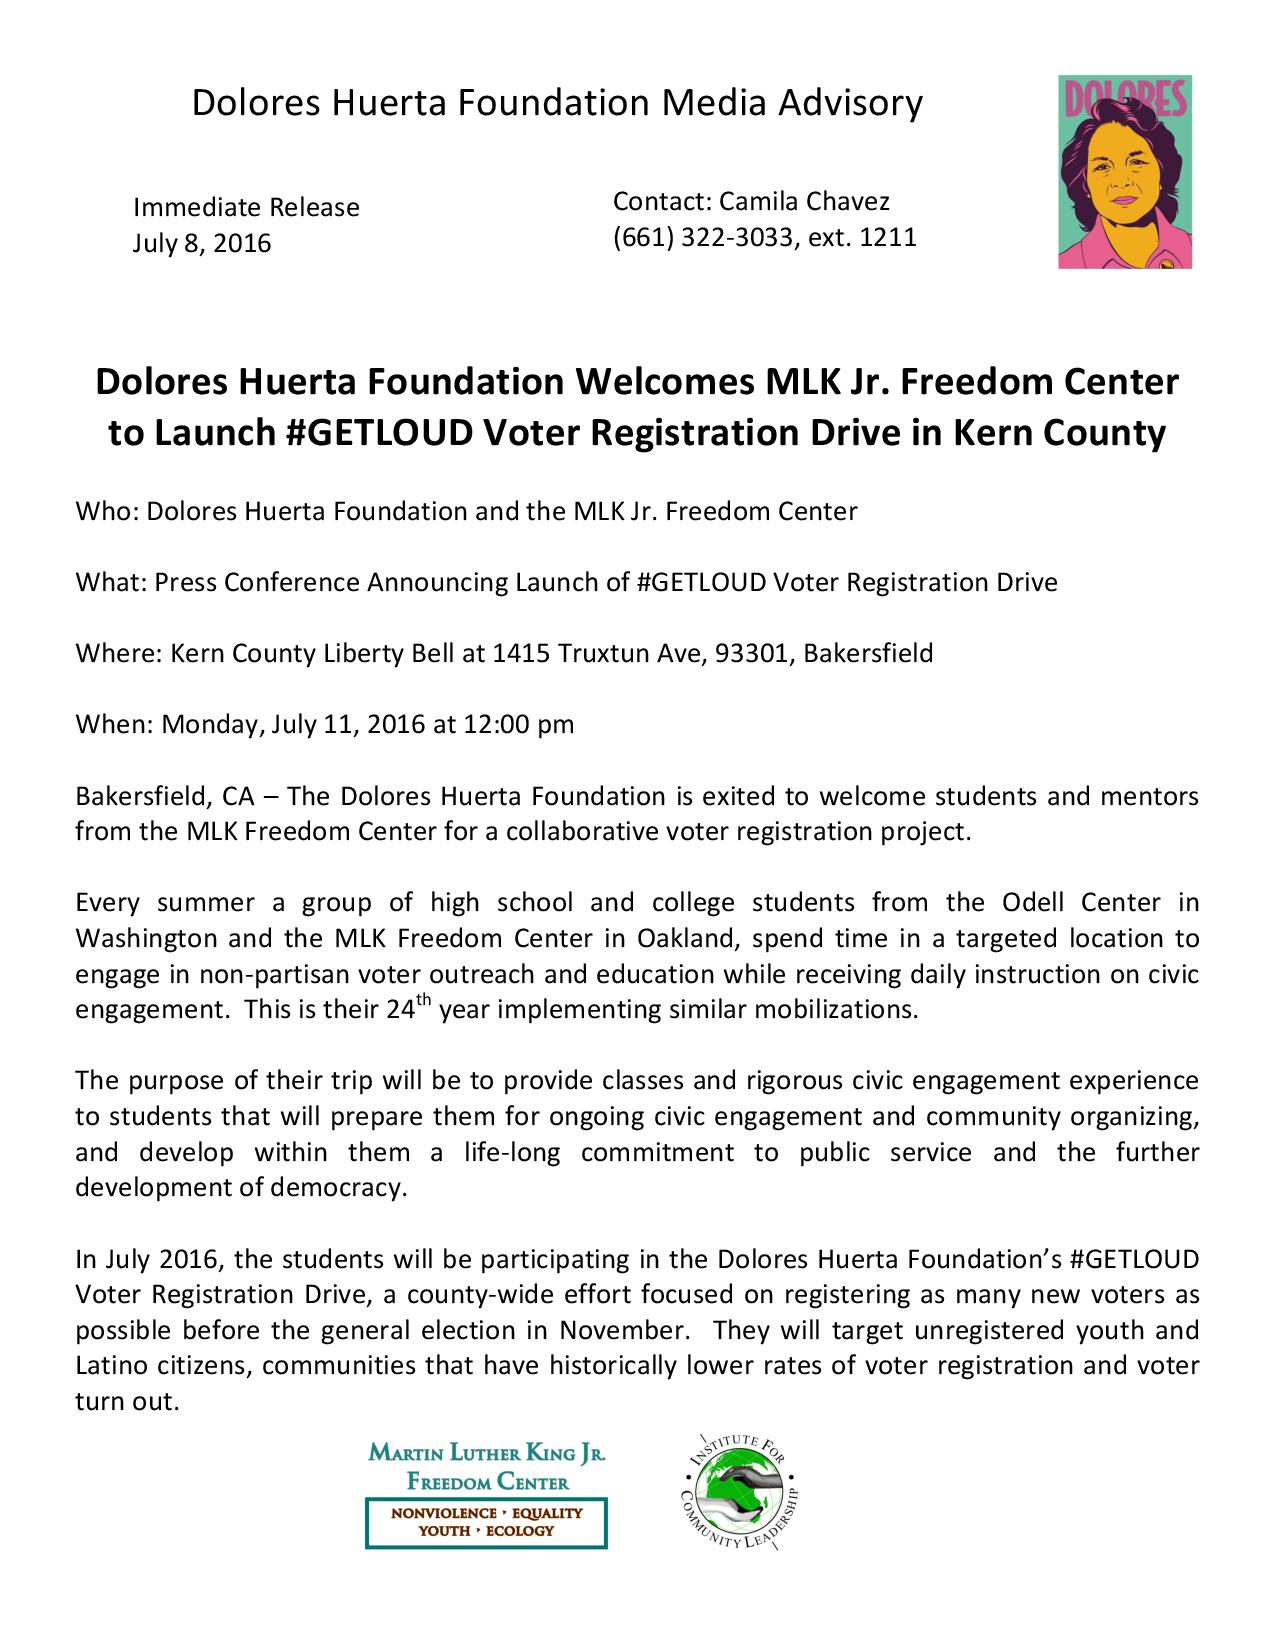 Media Advisory: MLK Students Voter Registration Drive 7-16